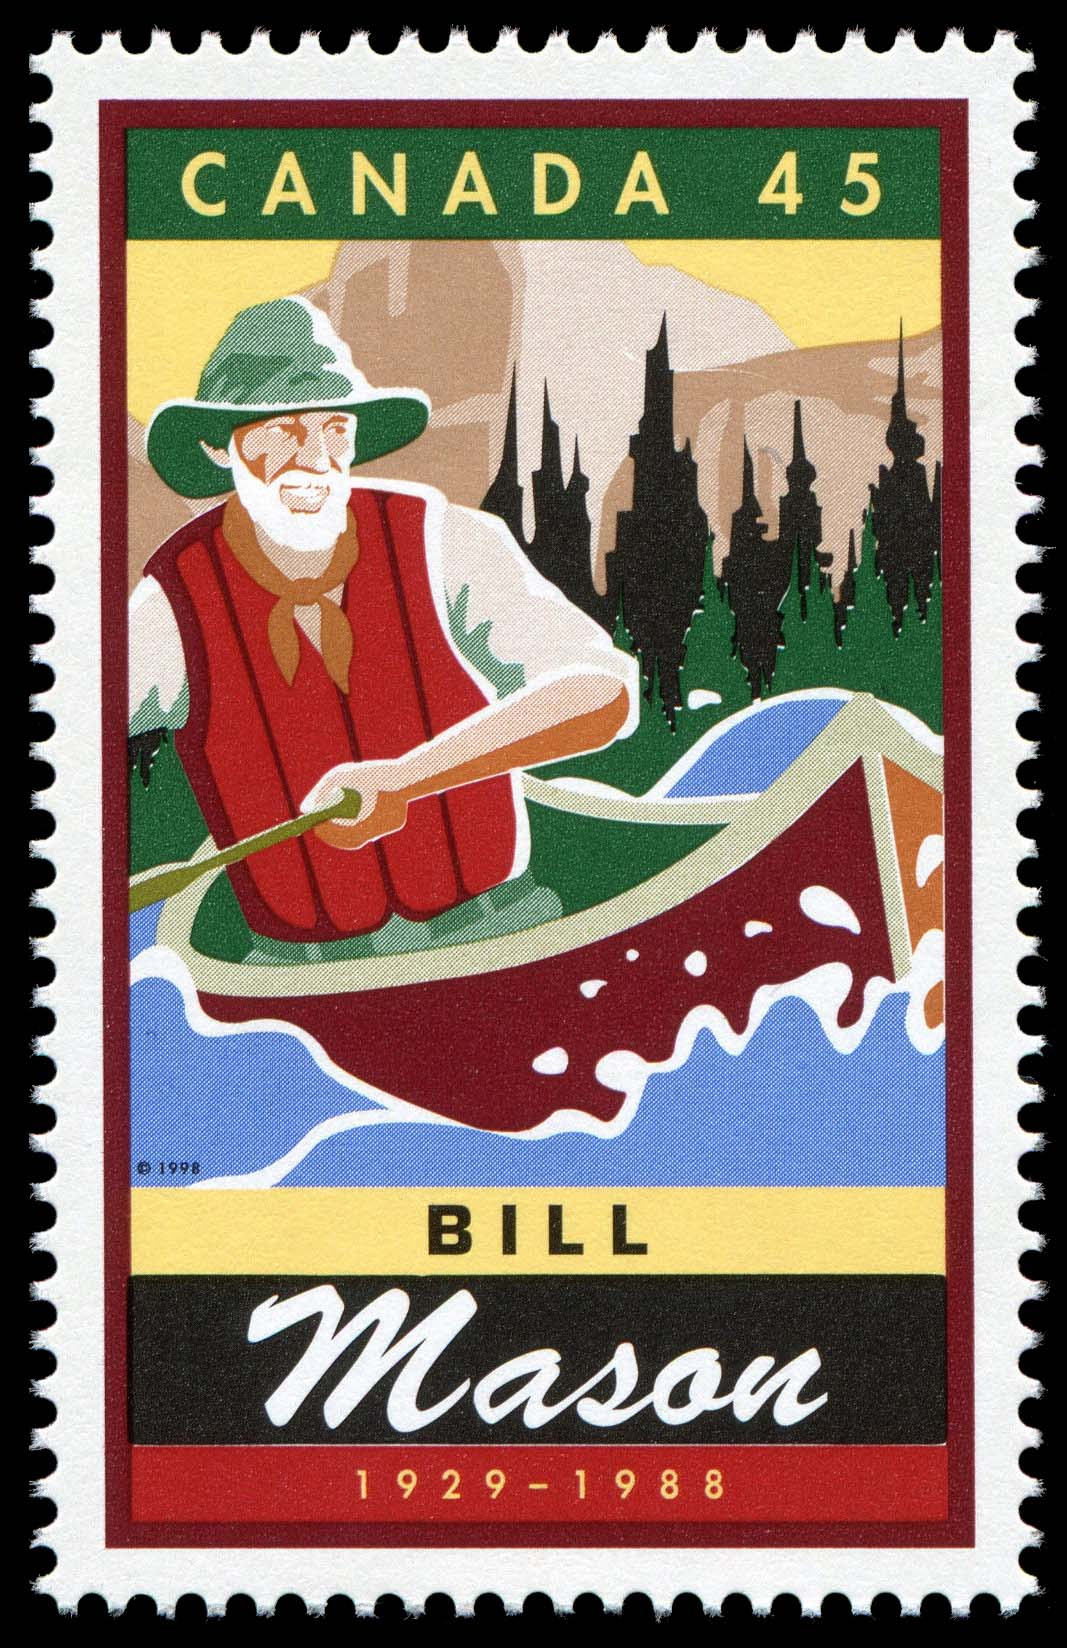 Bill (William) Mason, 1929-1988 Canada Postage Stamp